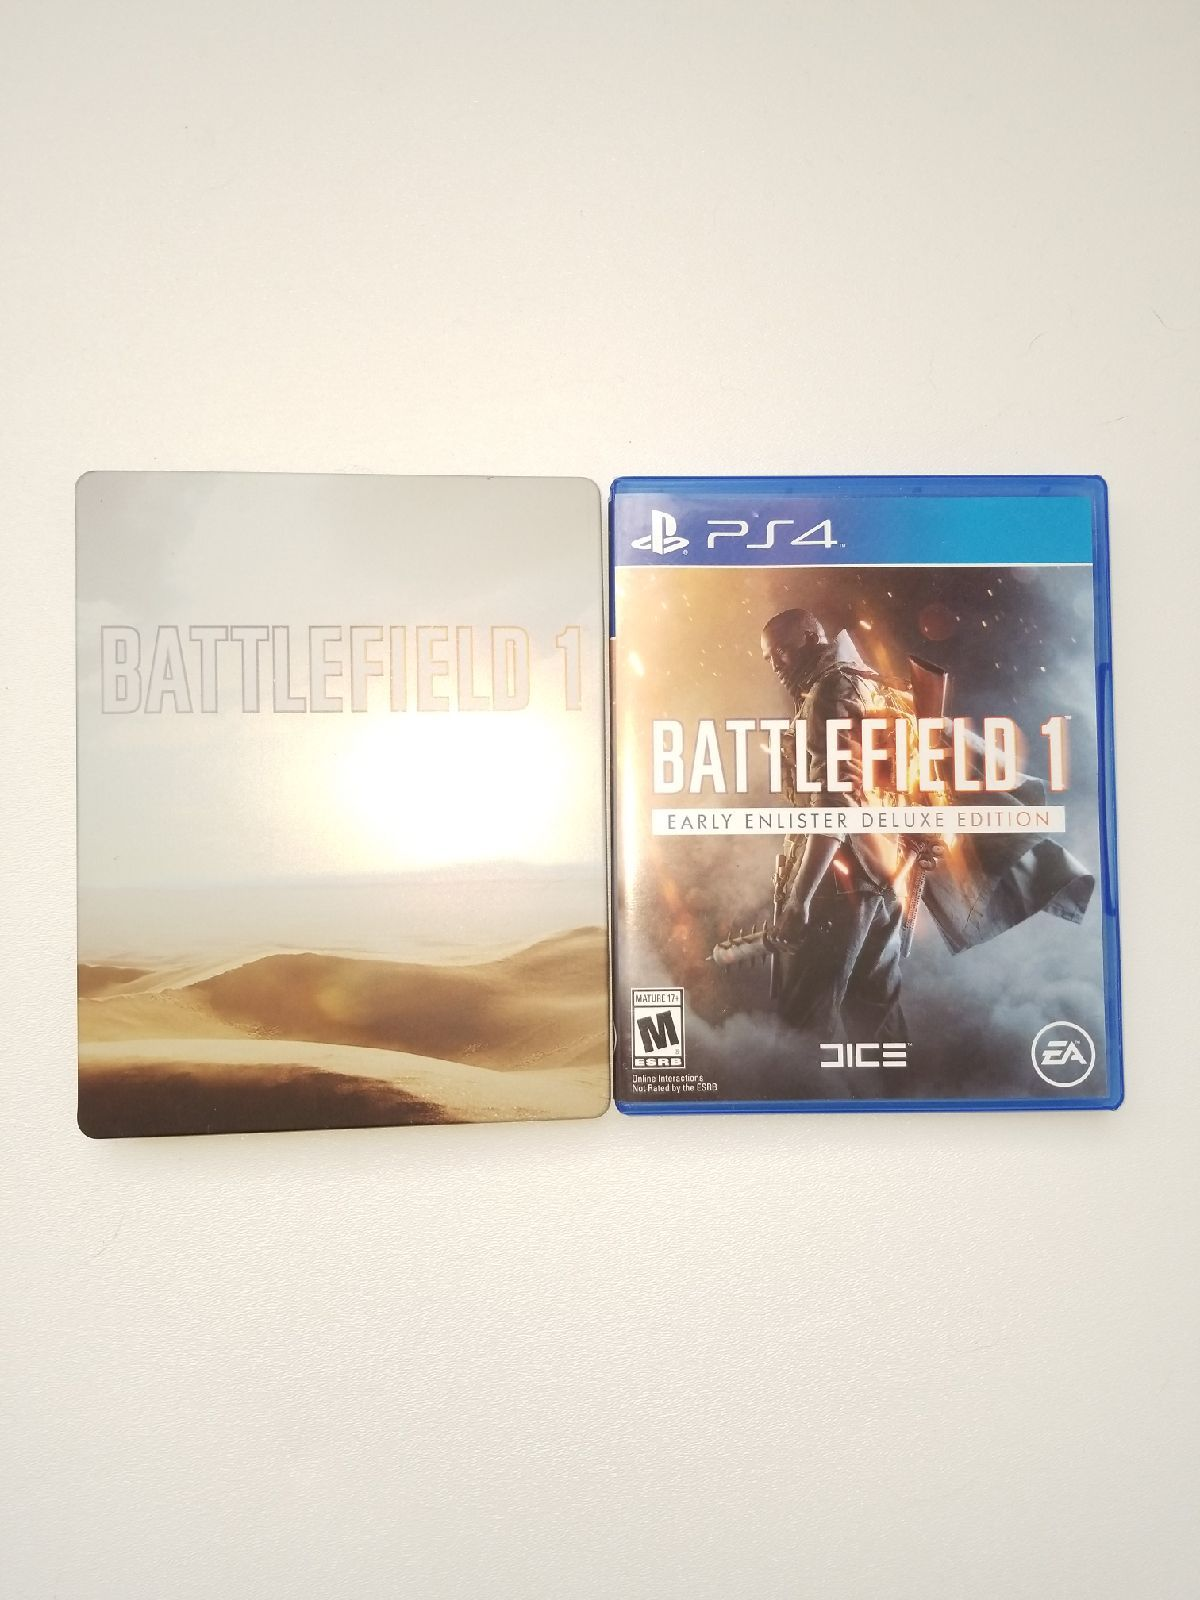 Battlefield 1 For Ps4 Includes Game Itself And A Steelbook No